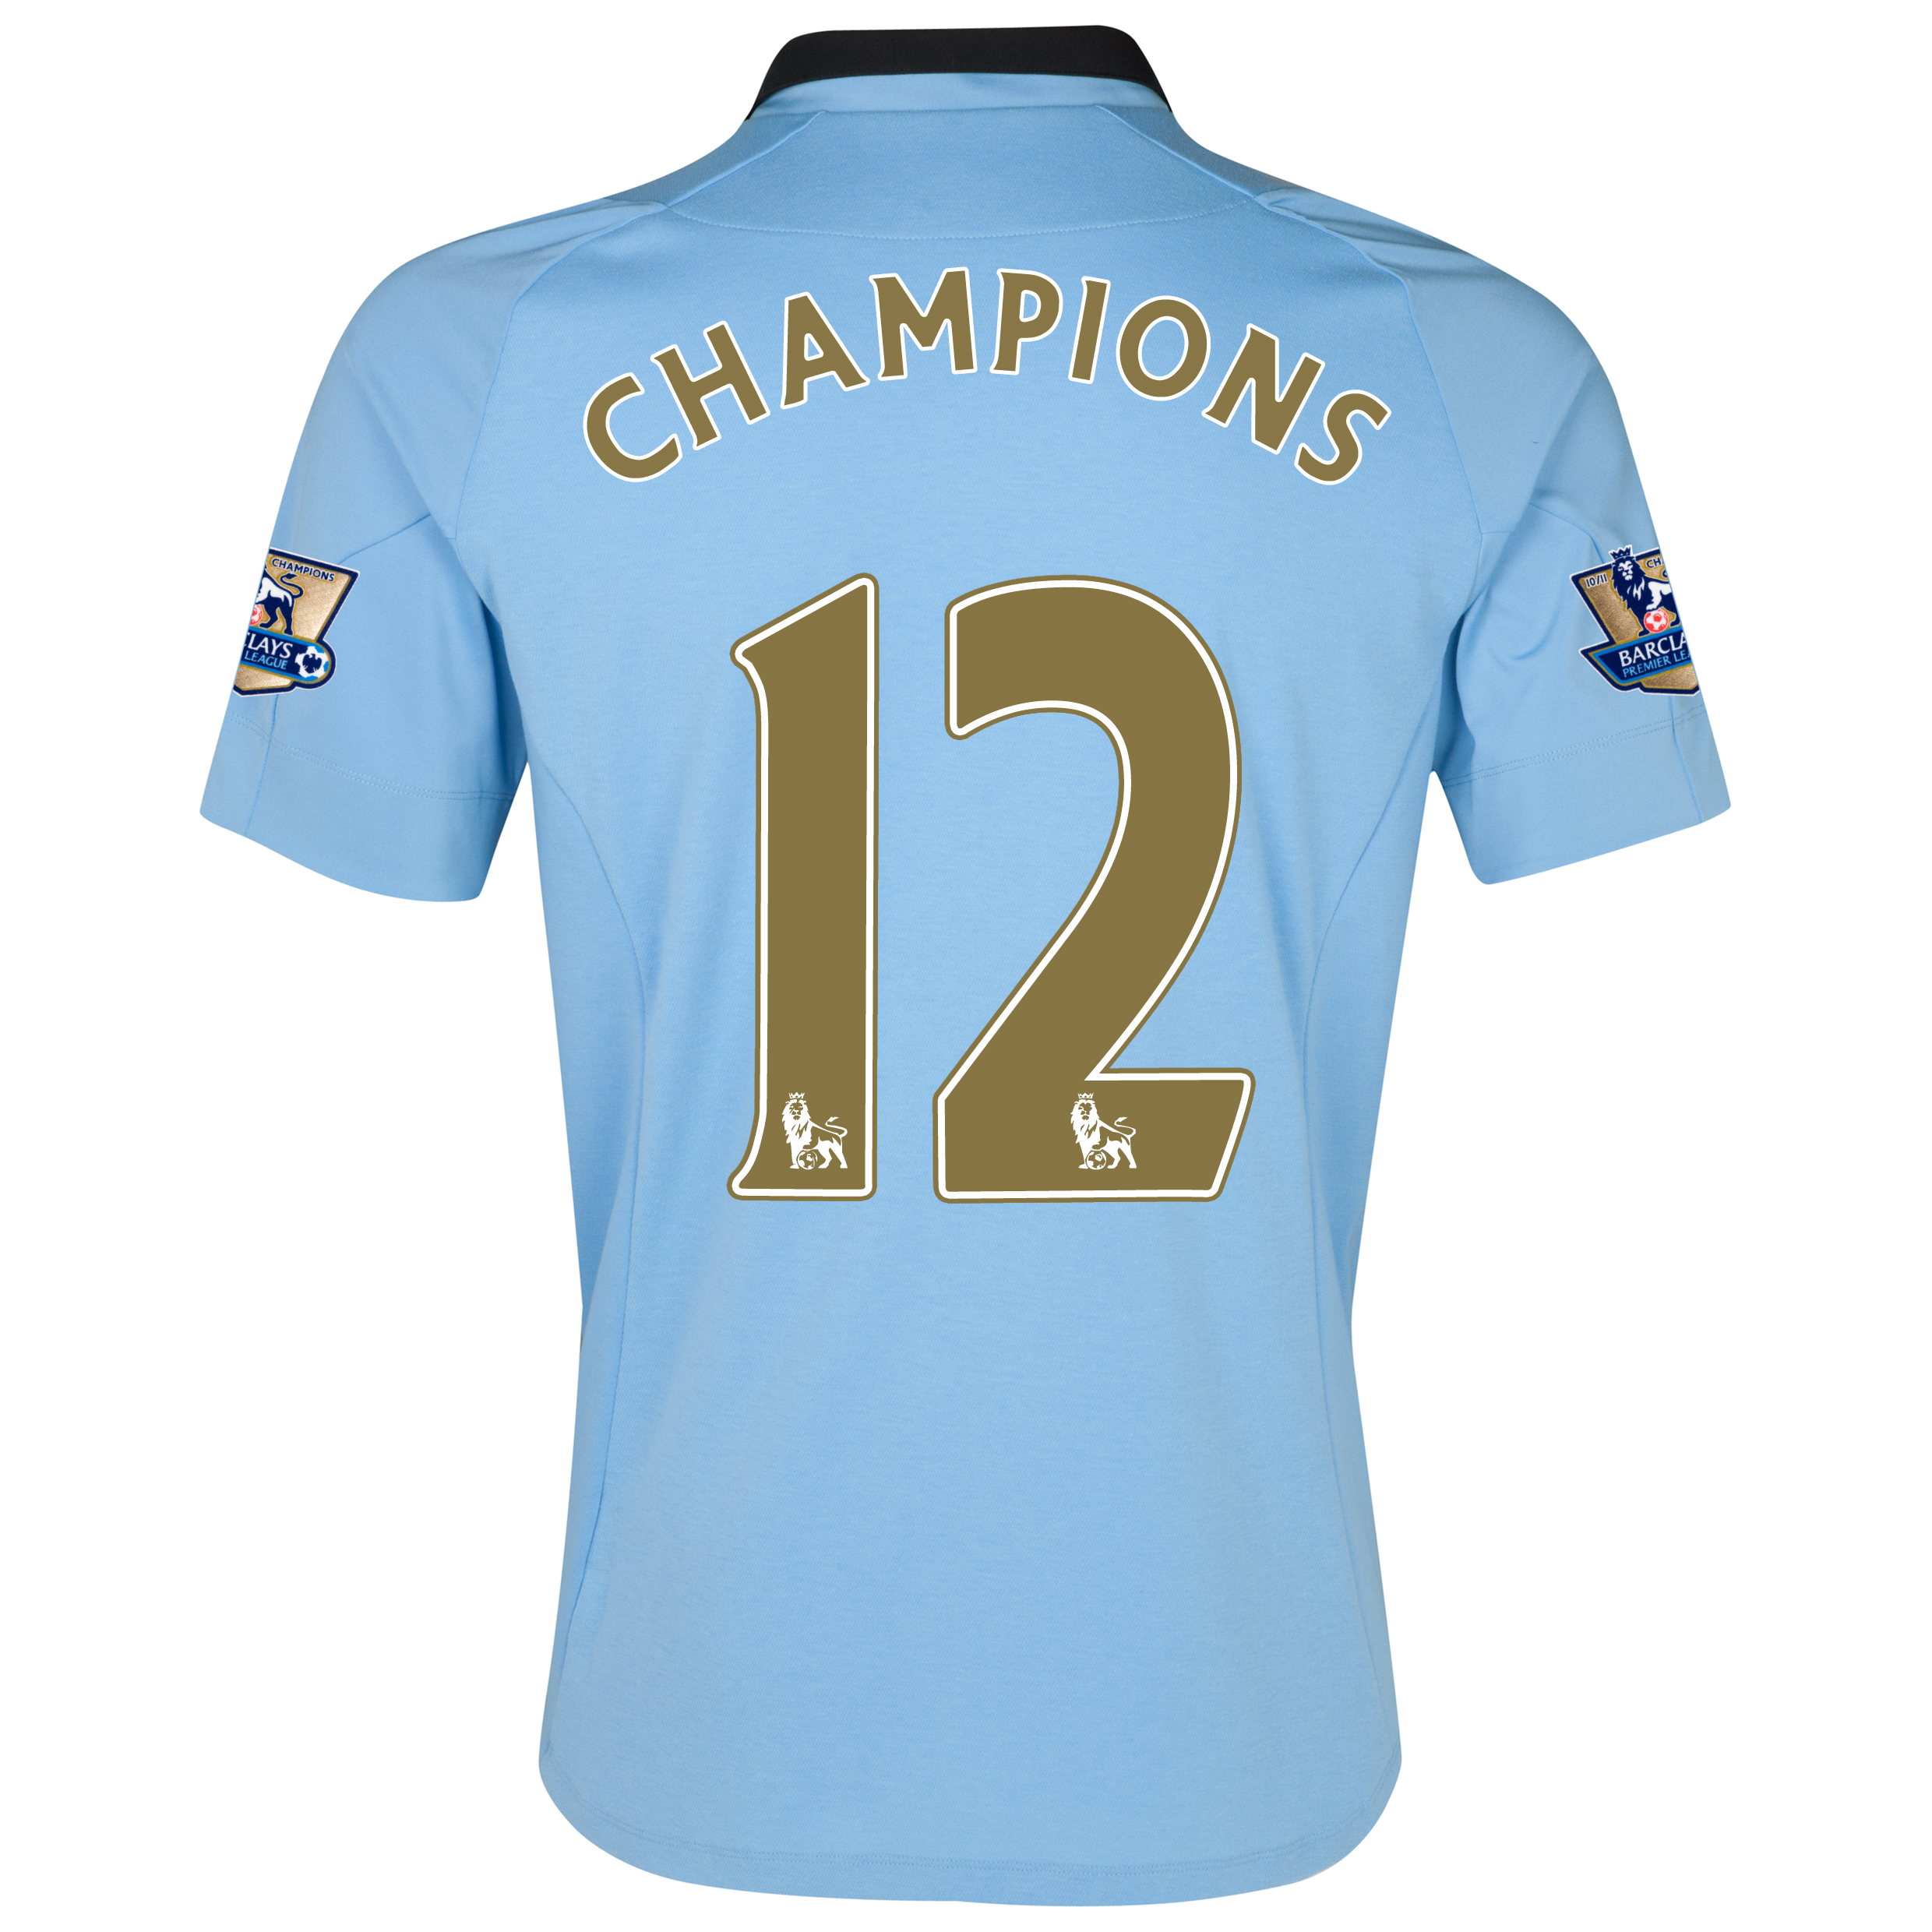 Manchester City Home Shirt 2012/13 with Champions 12 printing and Premier League Champions Badges - Junior